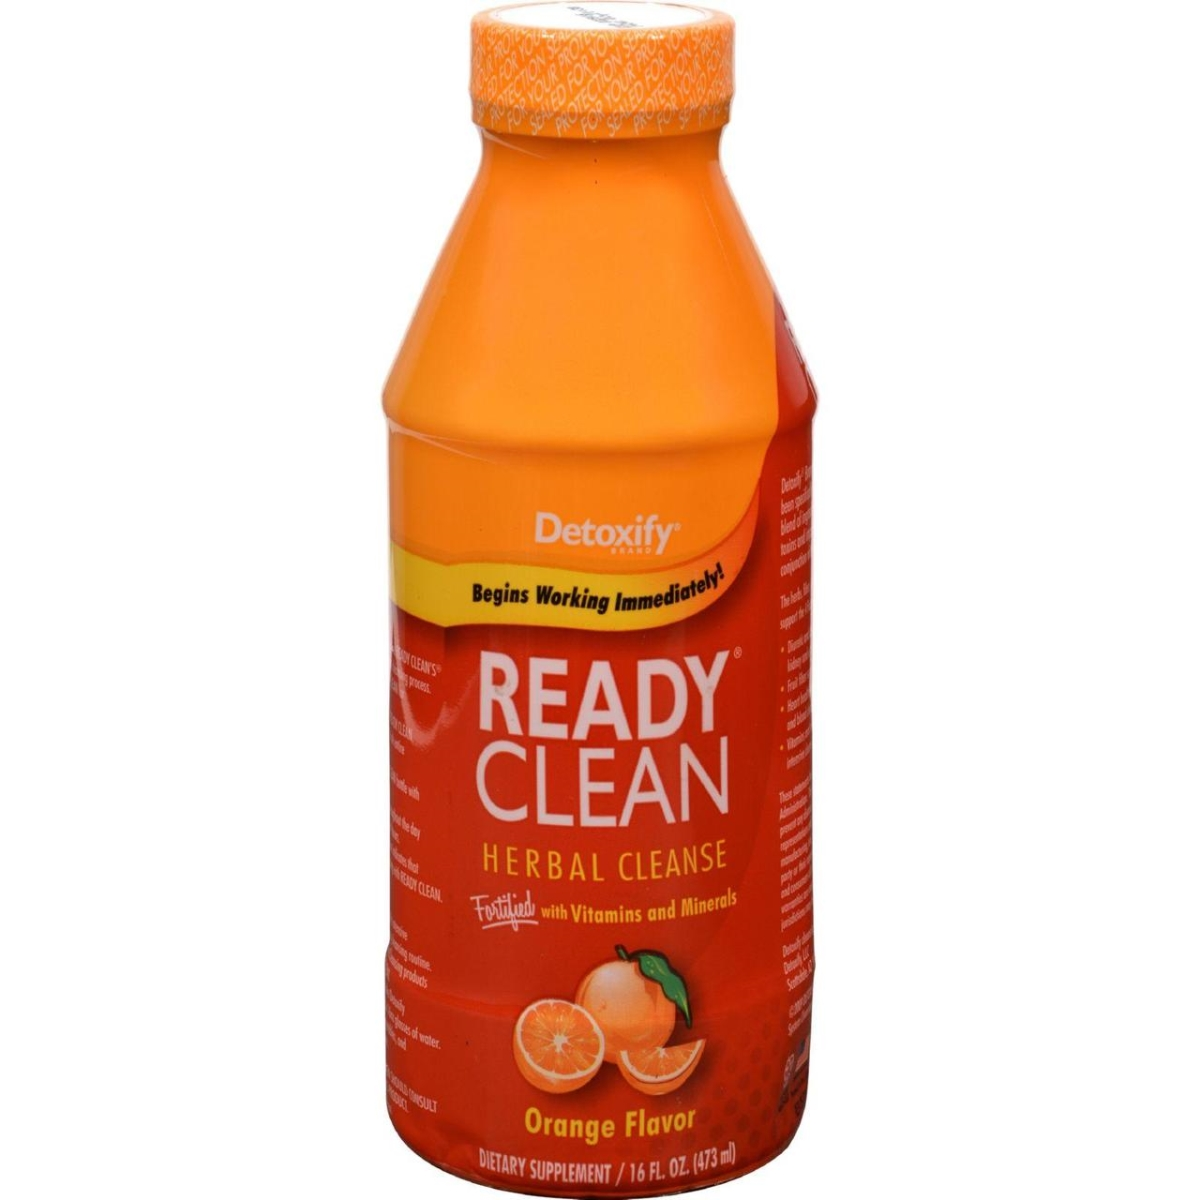 Detoxify HG0428490 16 oz One Source Ready Clean Herbal Cleanse Orange Flavor